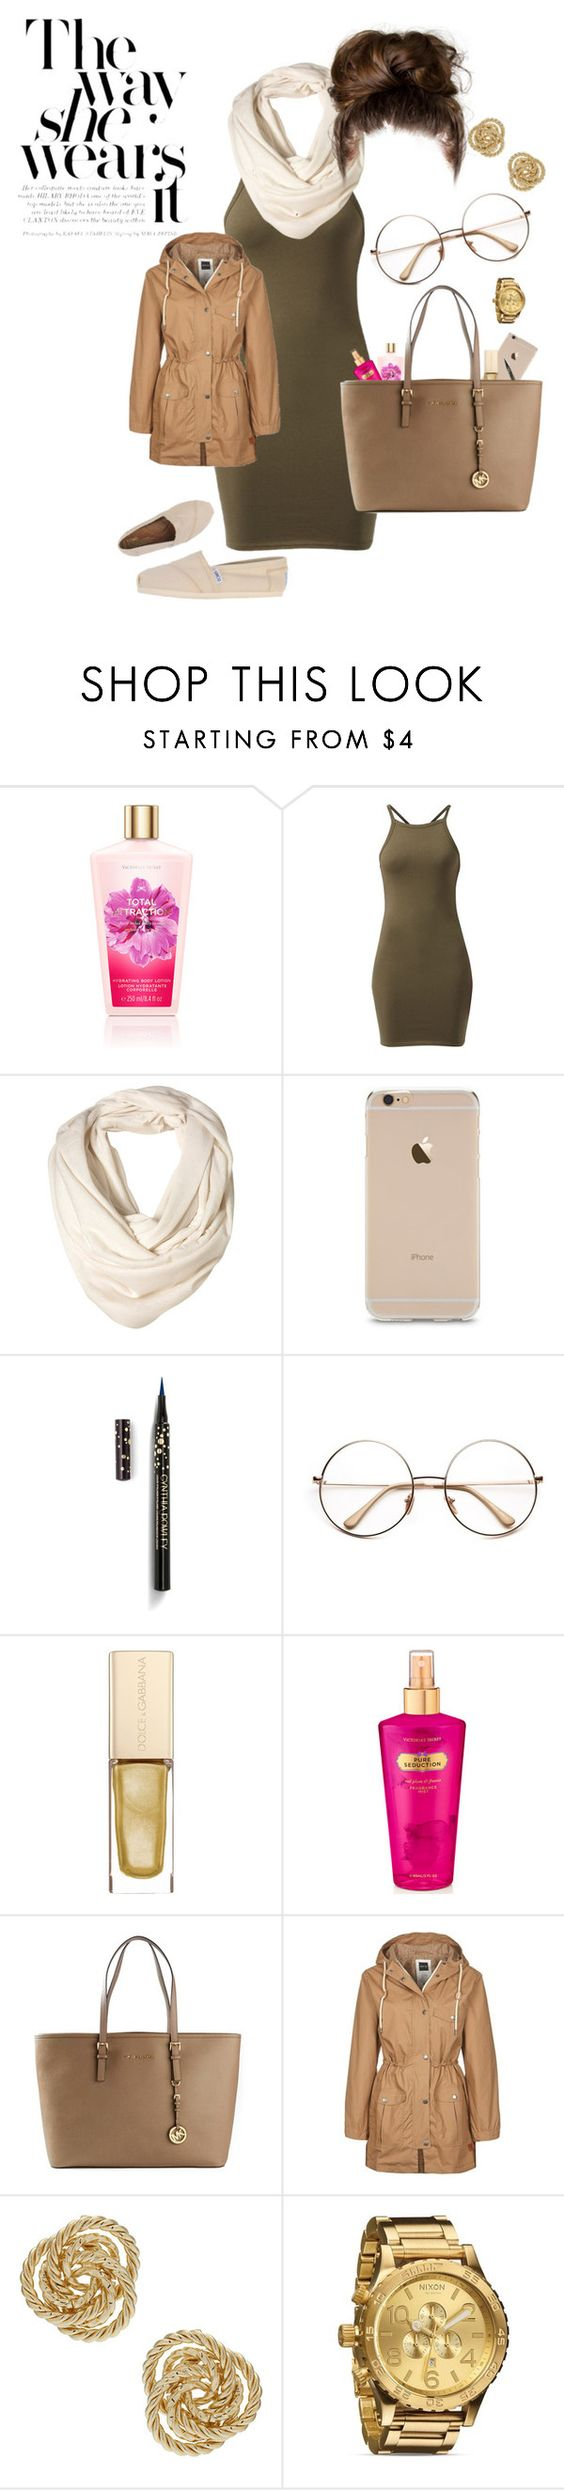 """Chill"" by trillestartist ❤ liked on Polyvore featuring Cynthia Rowley, Dolce&Gabbana, Victoria's Secret, Michael Kors, Ucon Acrobatics, Nixon and TOMS"